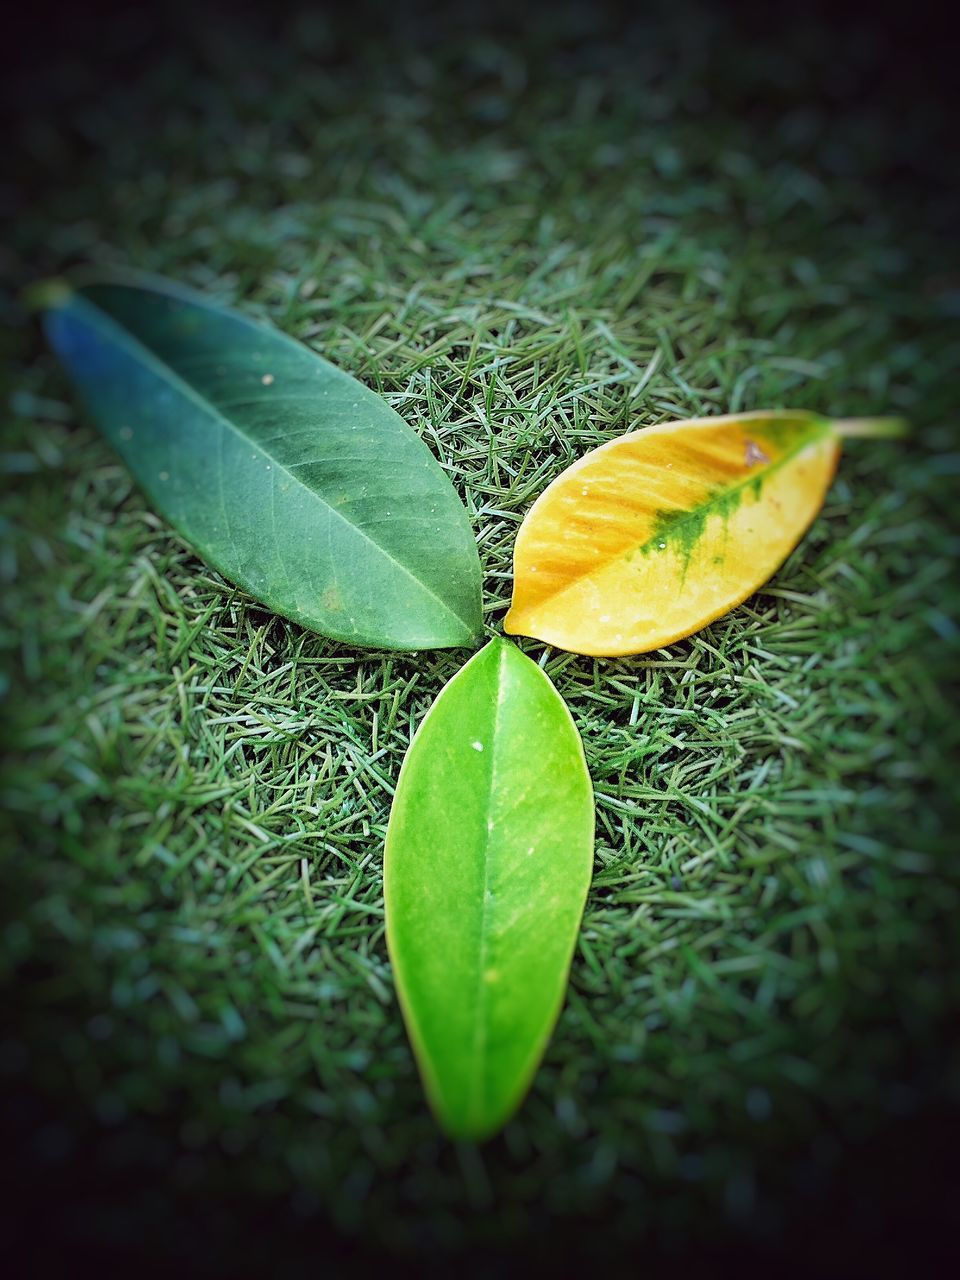 leaf, green color, growth, nature, no people, freshness, close-up, vignette, plant, outdoors, grass, beauty in nature, day, fragility, healthy eating